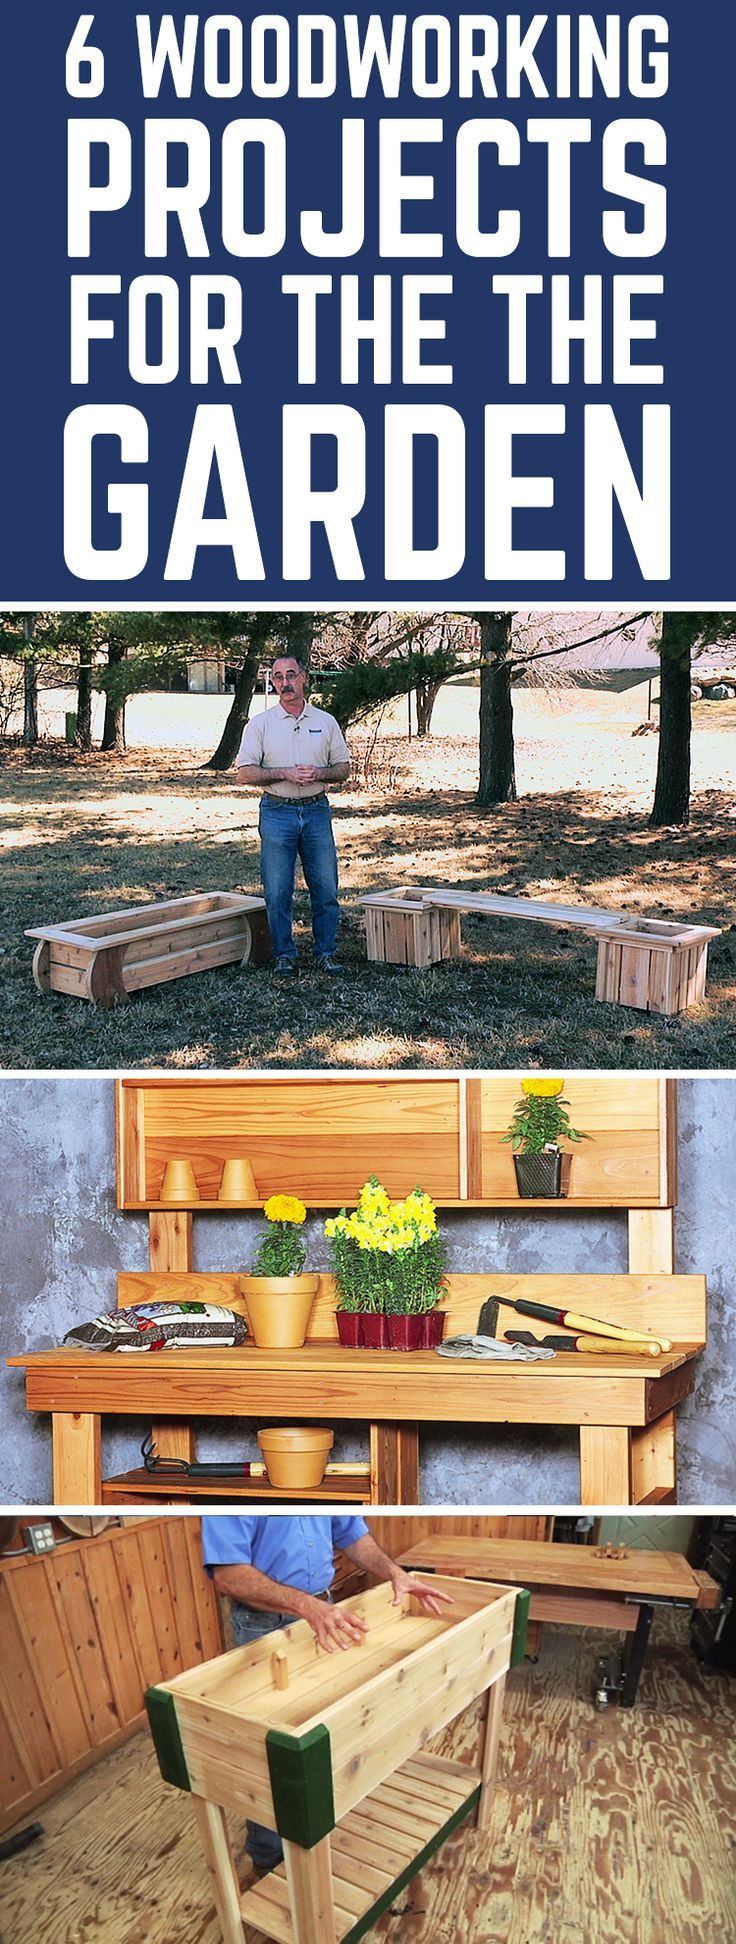 6 Woodworking Projects for the Garden 606